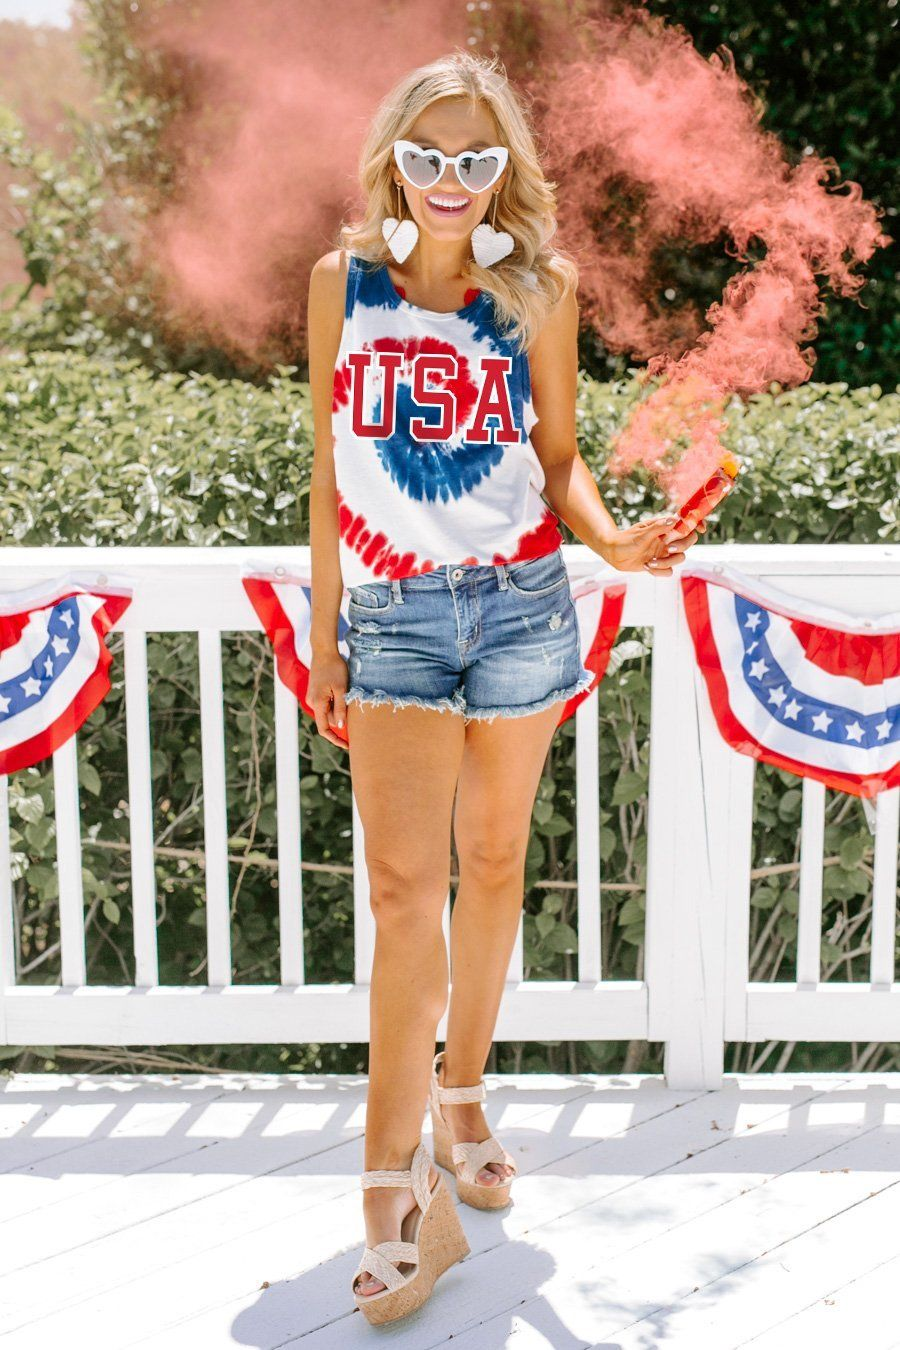 Cute casual tie-dye with outfit shorts from July 4th